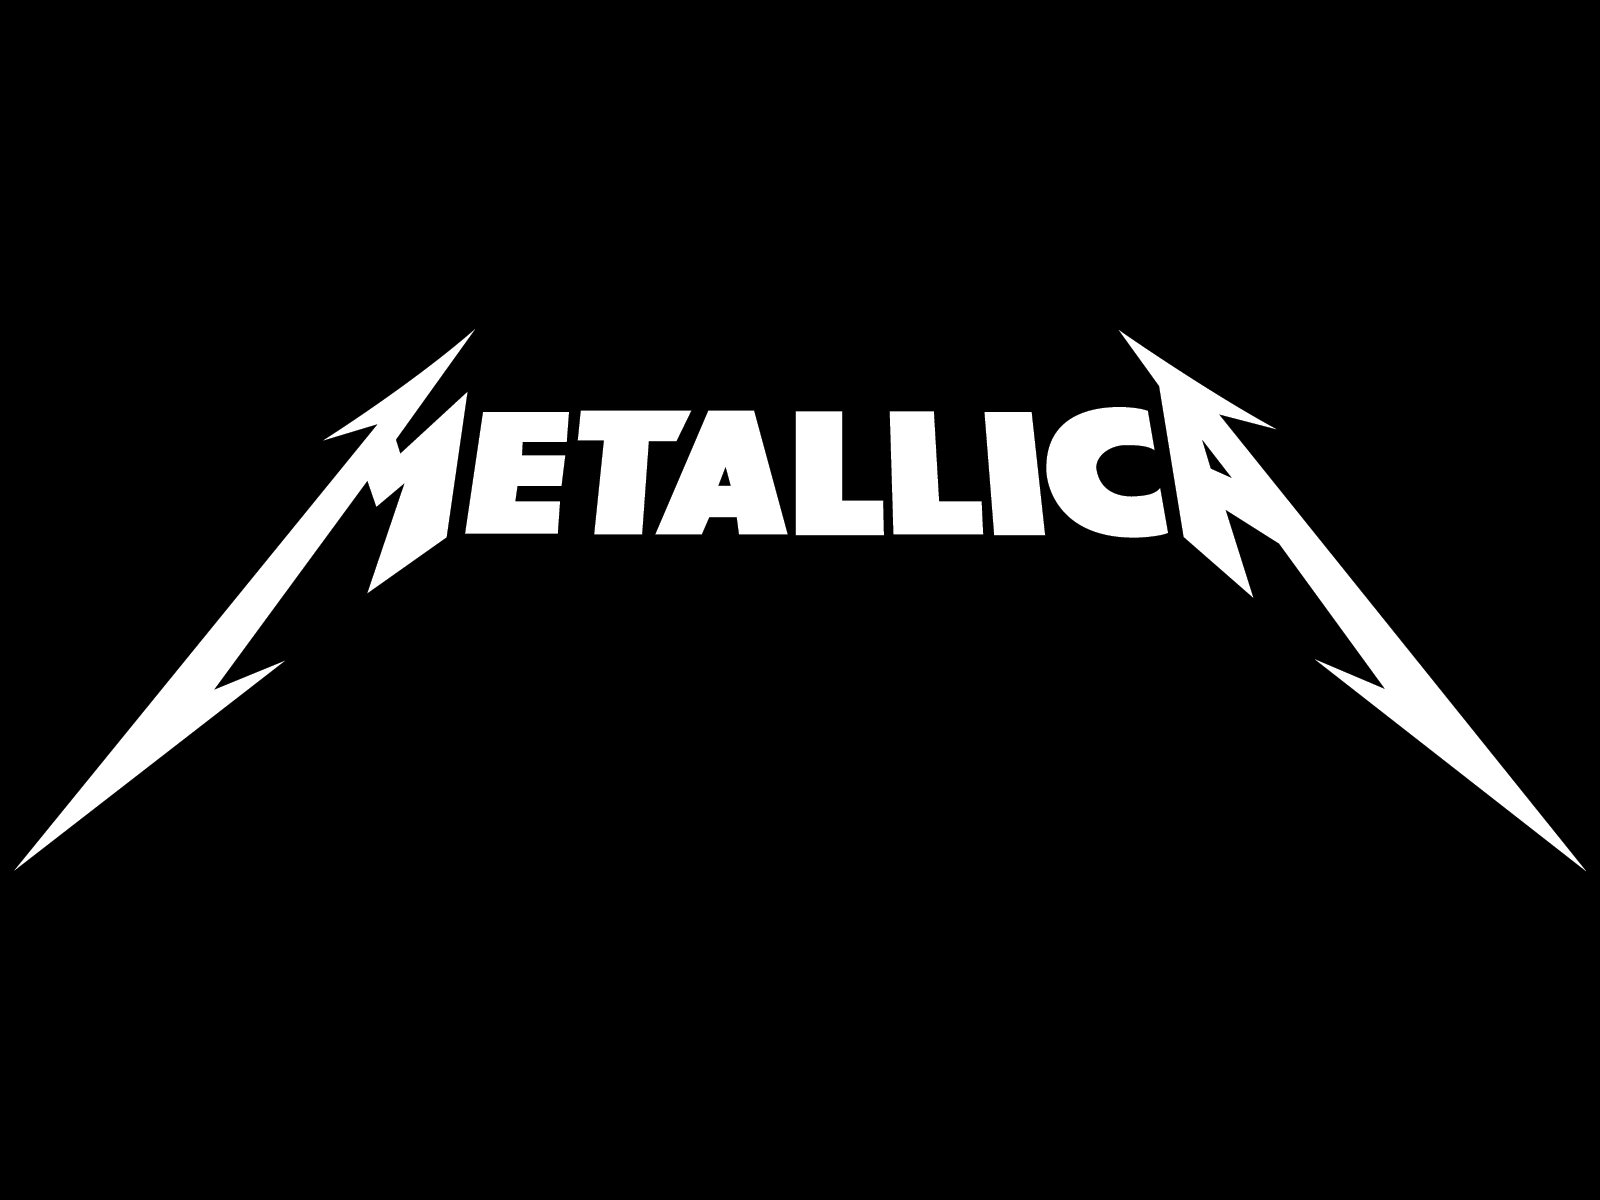 76 metallica hd wallpapers | background images - wallpaper abyss